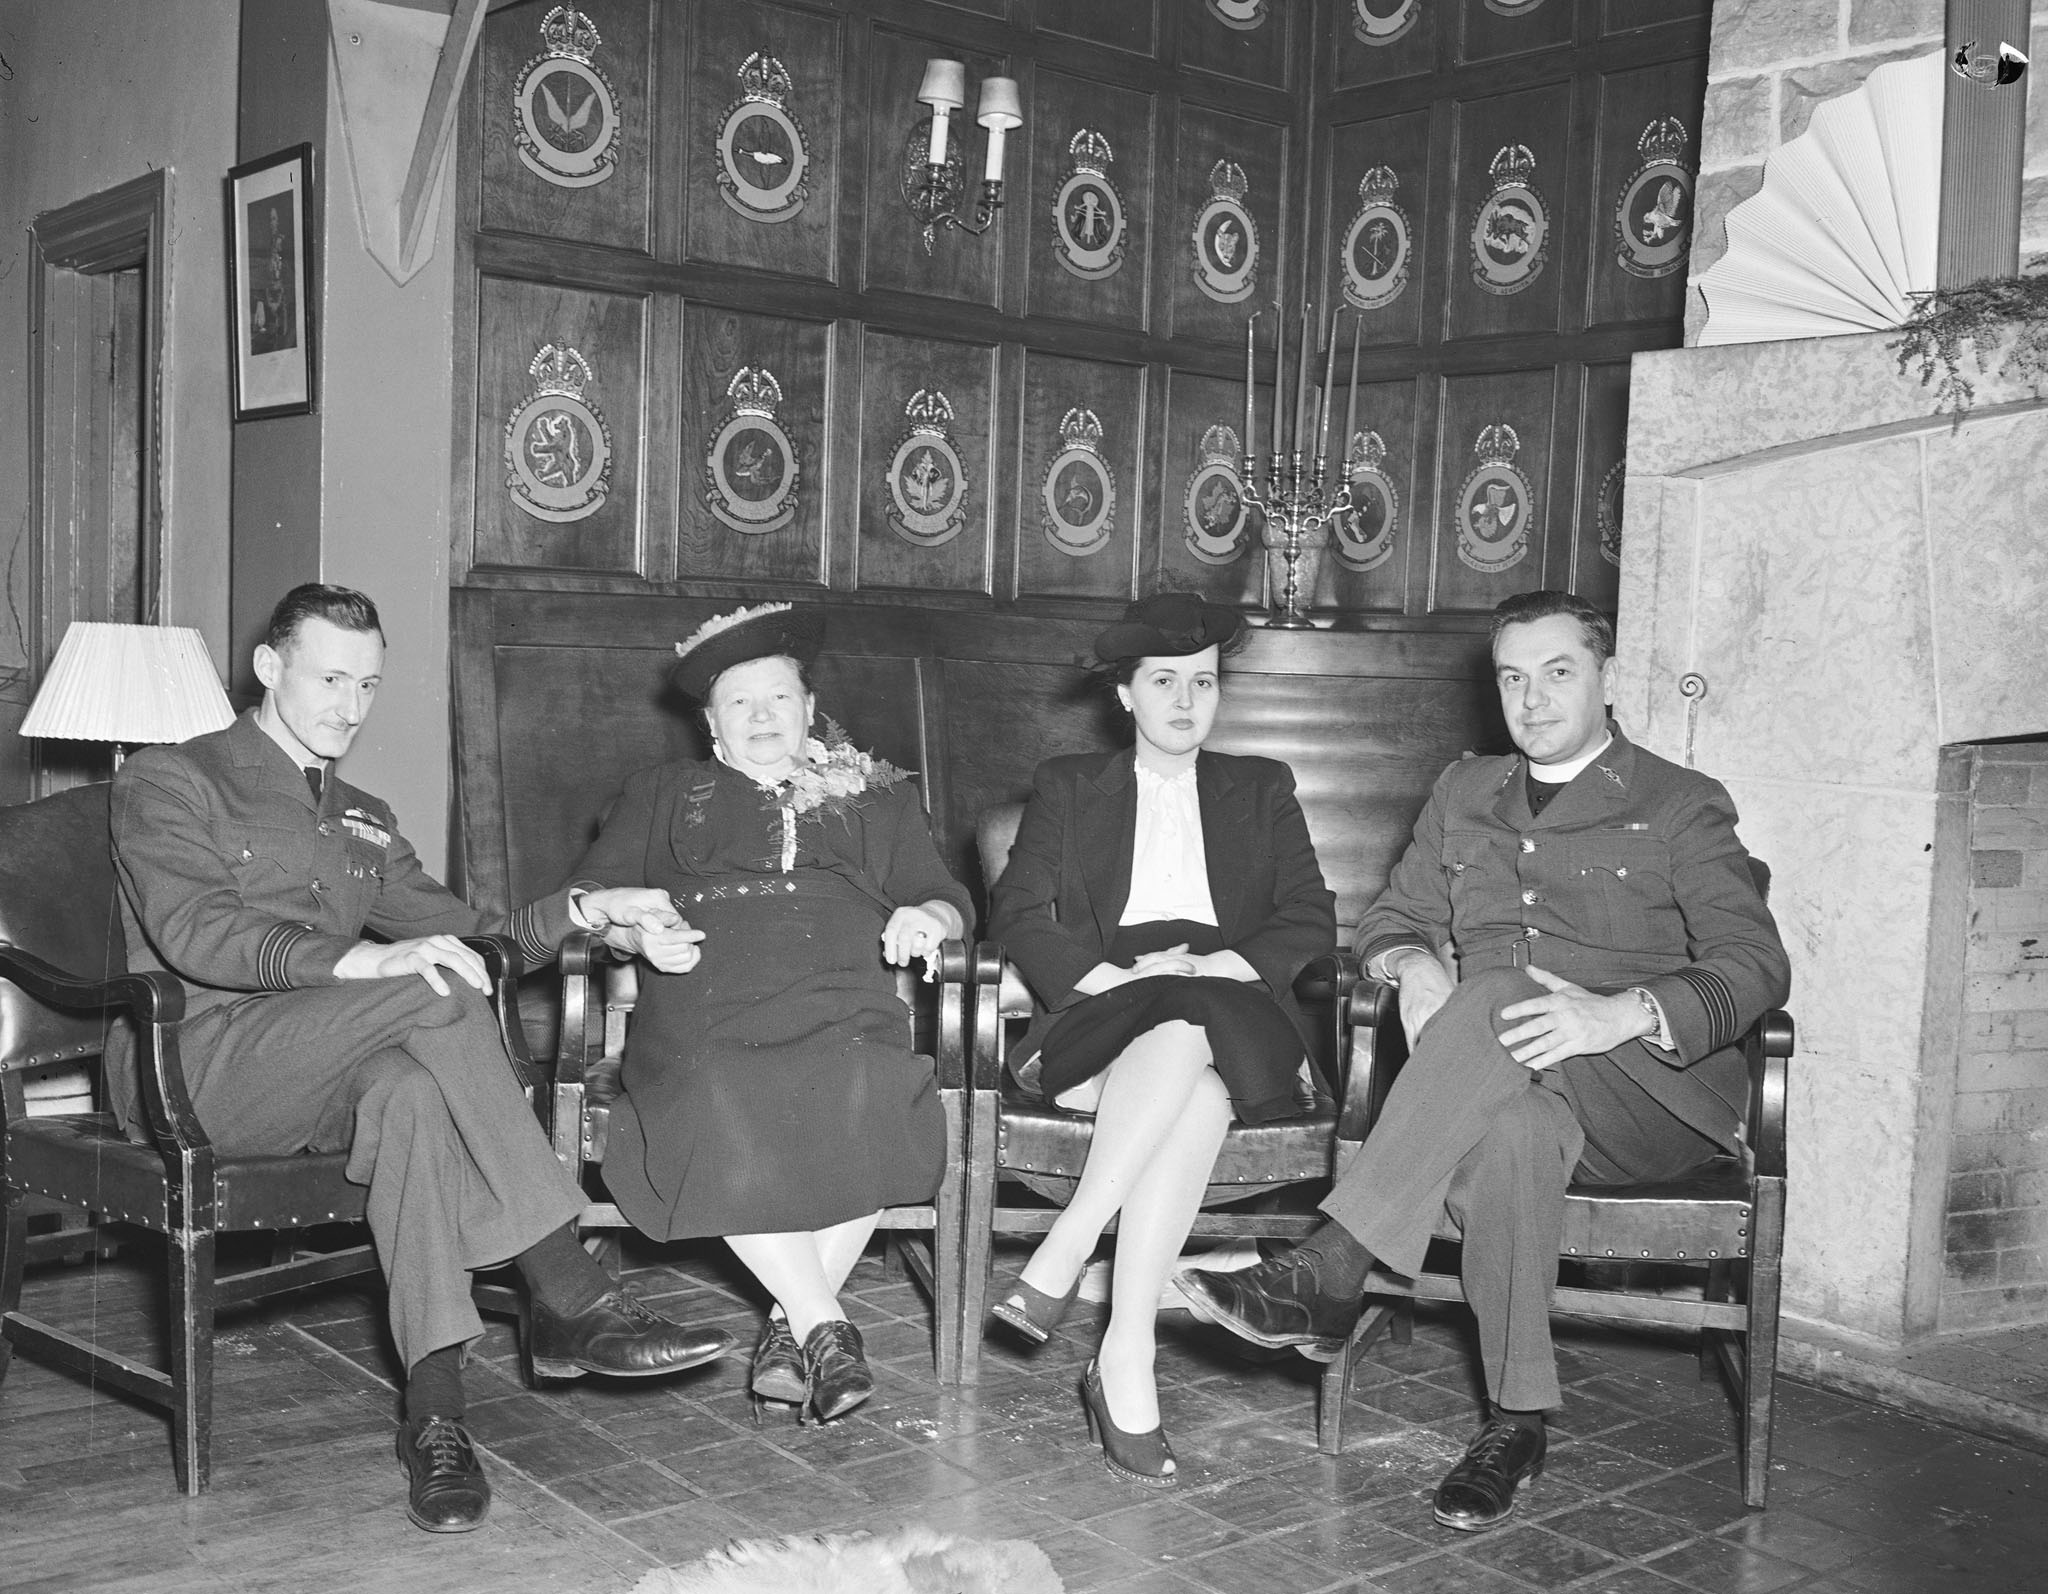 Mrs. Stanley Mynarski, mother of the late Pilot Officer Andrew Mynarski, was guest of honour for a tea at the RCAF Mess on December 13, 1945, while in Ottawa to receive her citizenship papers. From left to right: Wing Commander Len Birchall, Mrs. Mynarski, Mrs. Birchall and Wing Commander, L.A. Costello, senior RCAF Roman Catholic chaplain. PHOTO: DND Archives, PL-38317